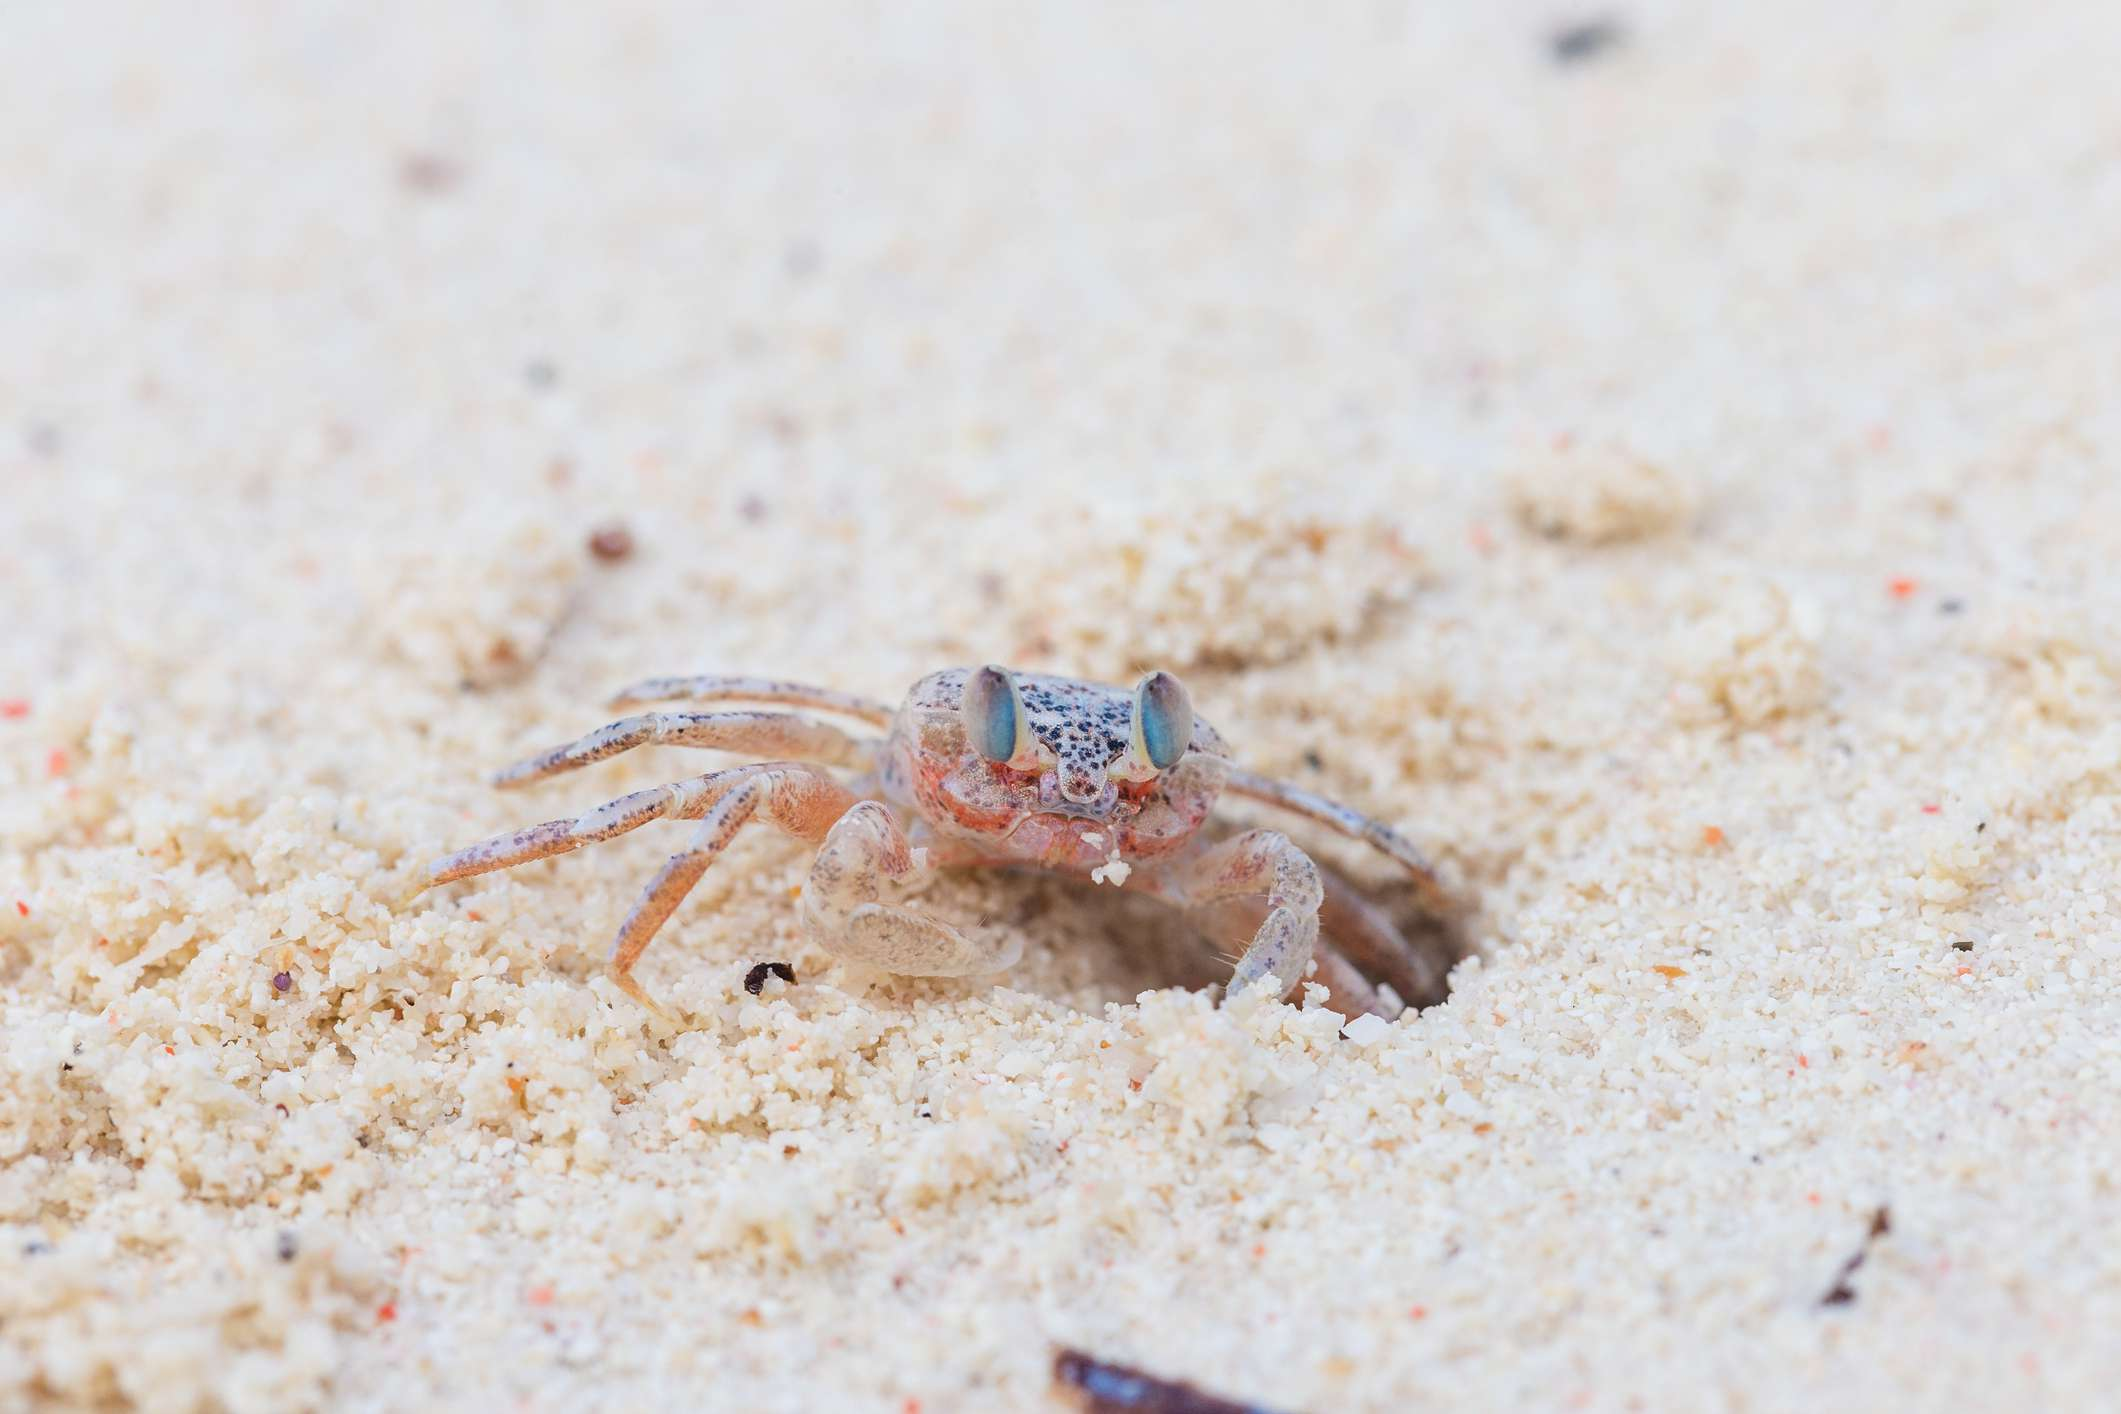 A close-up of a pink ghost crab making a hole in the sand.